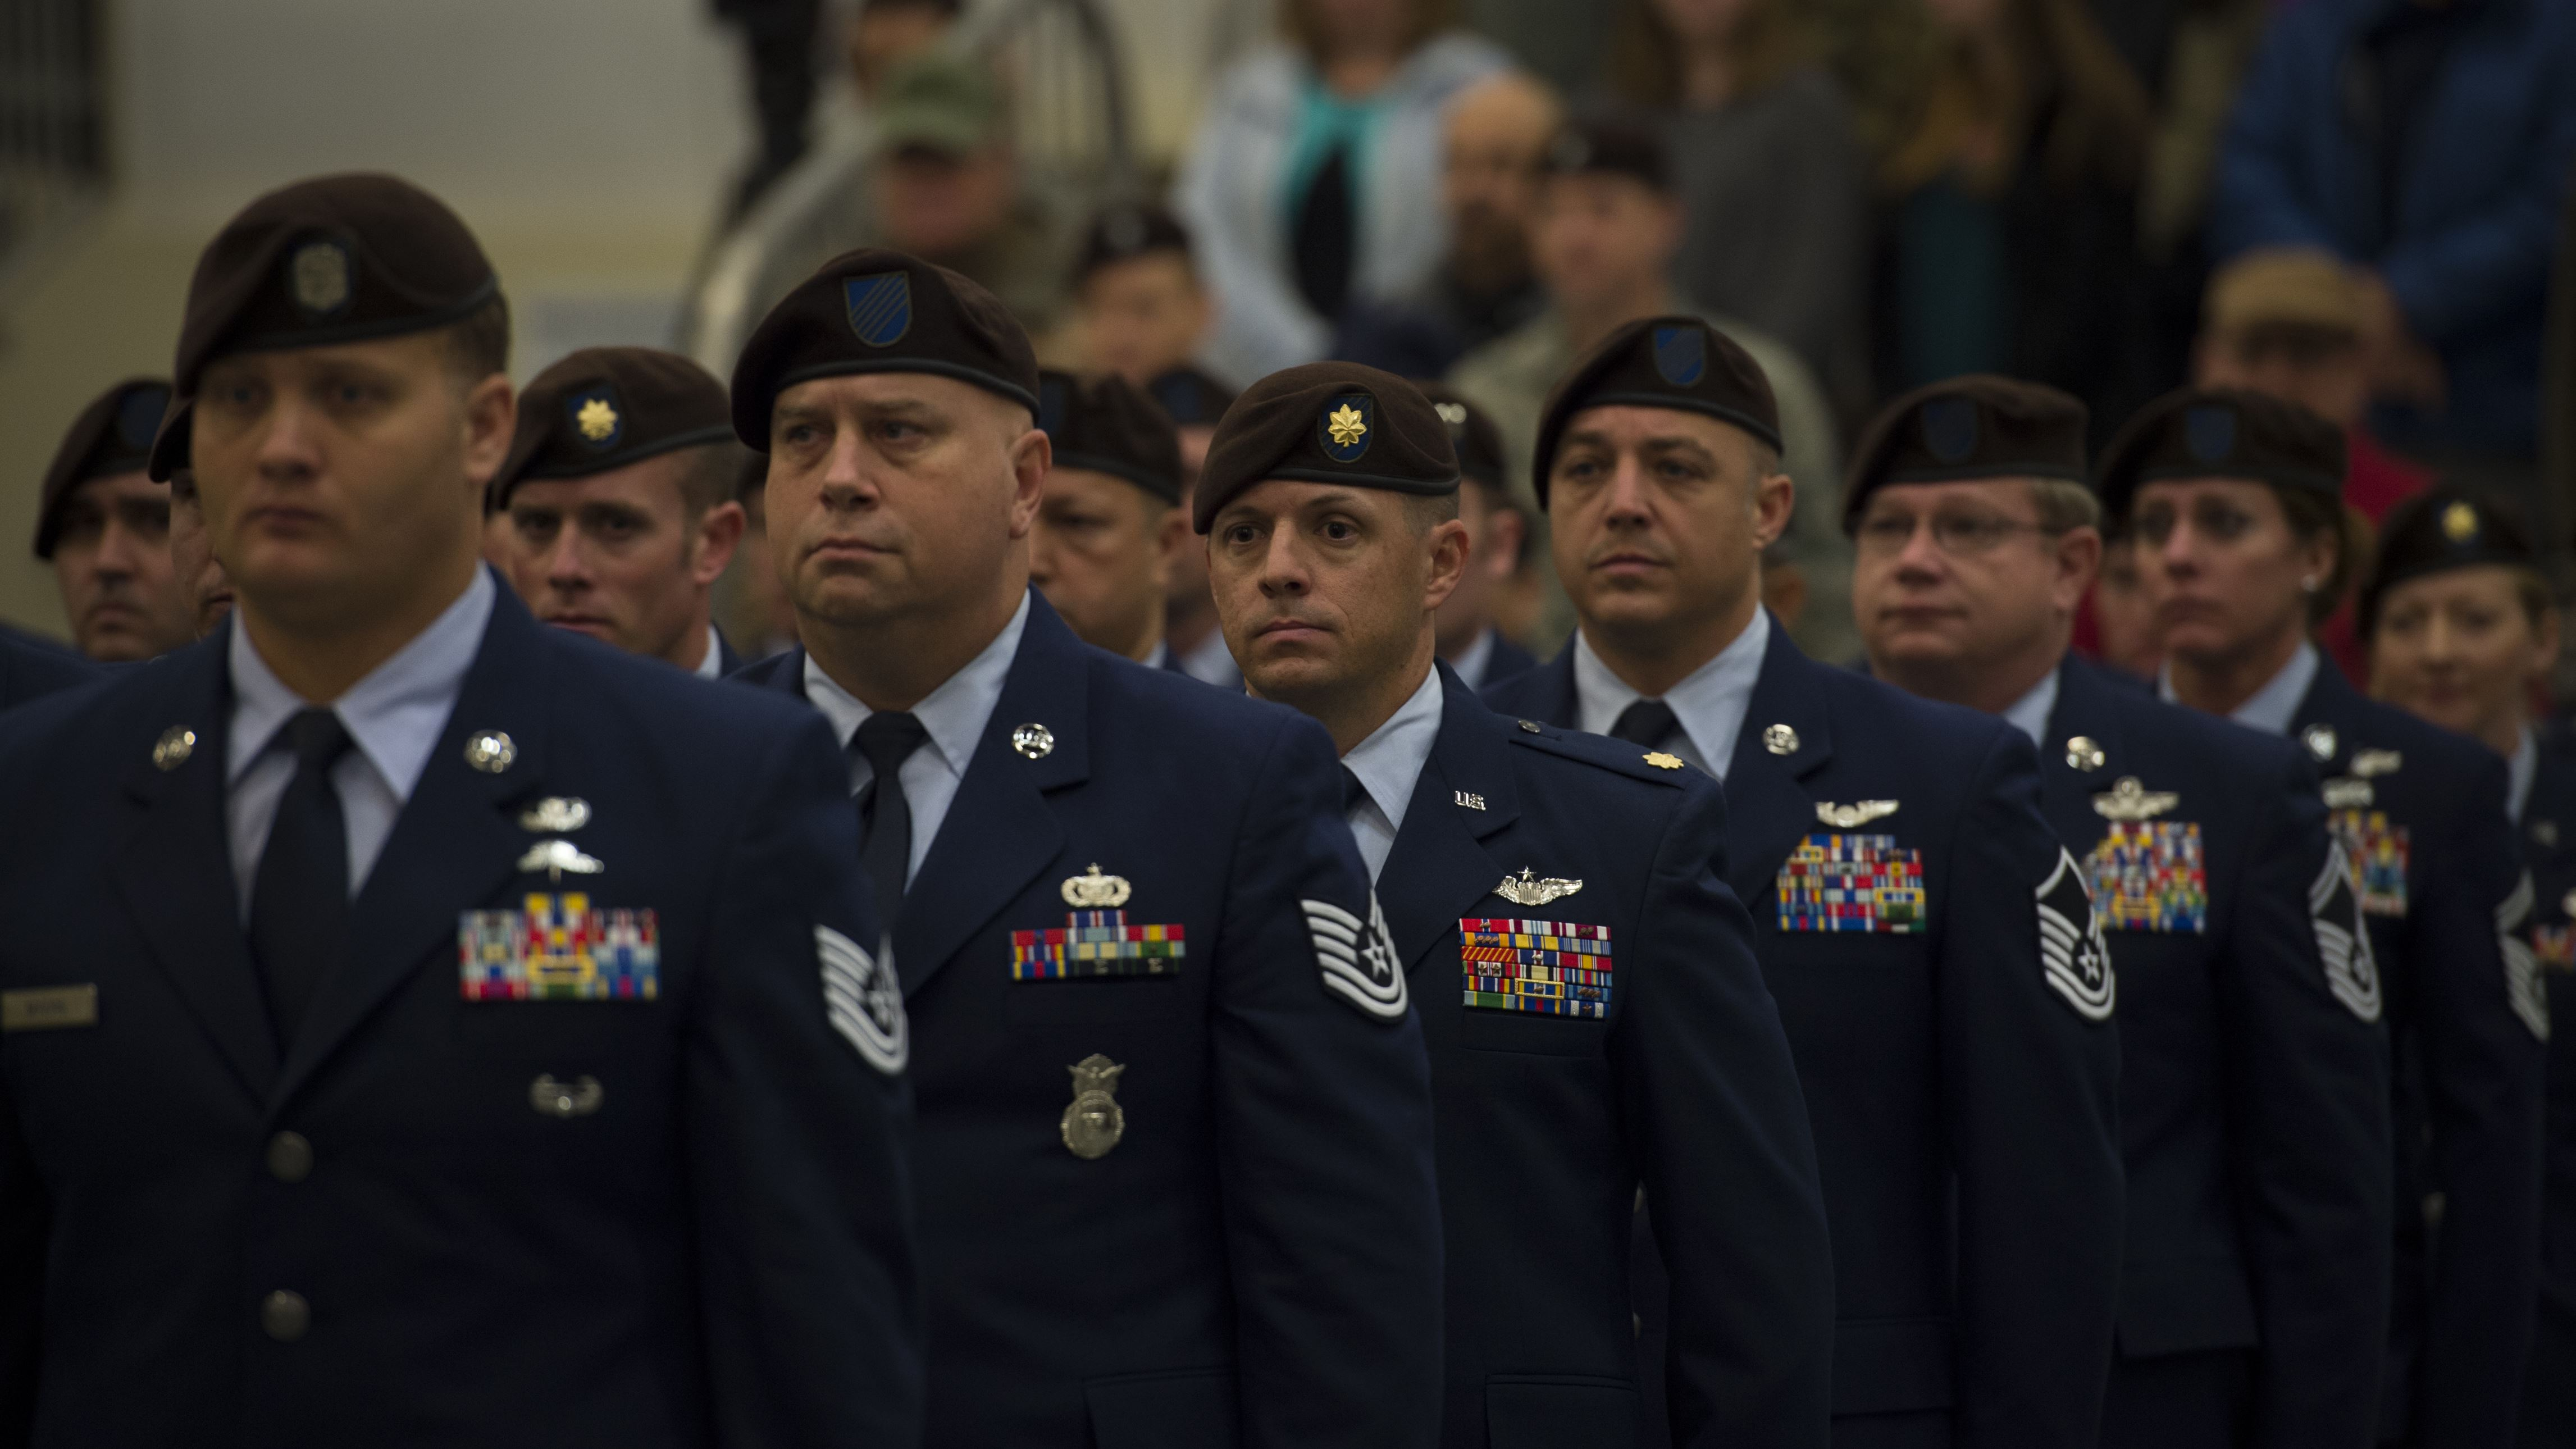 who wears berets in the air force